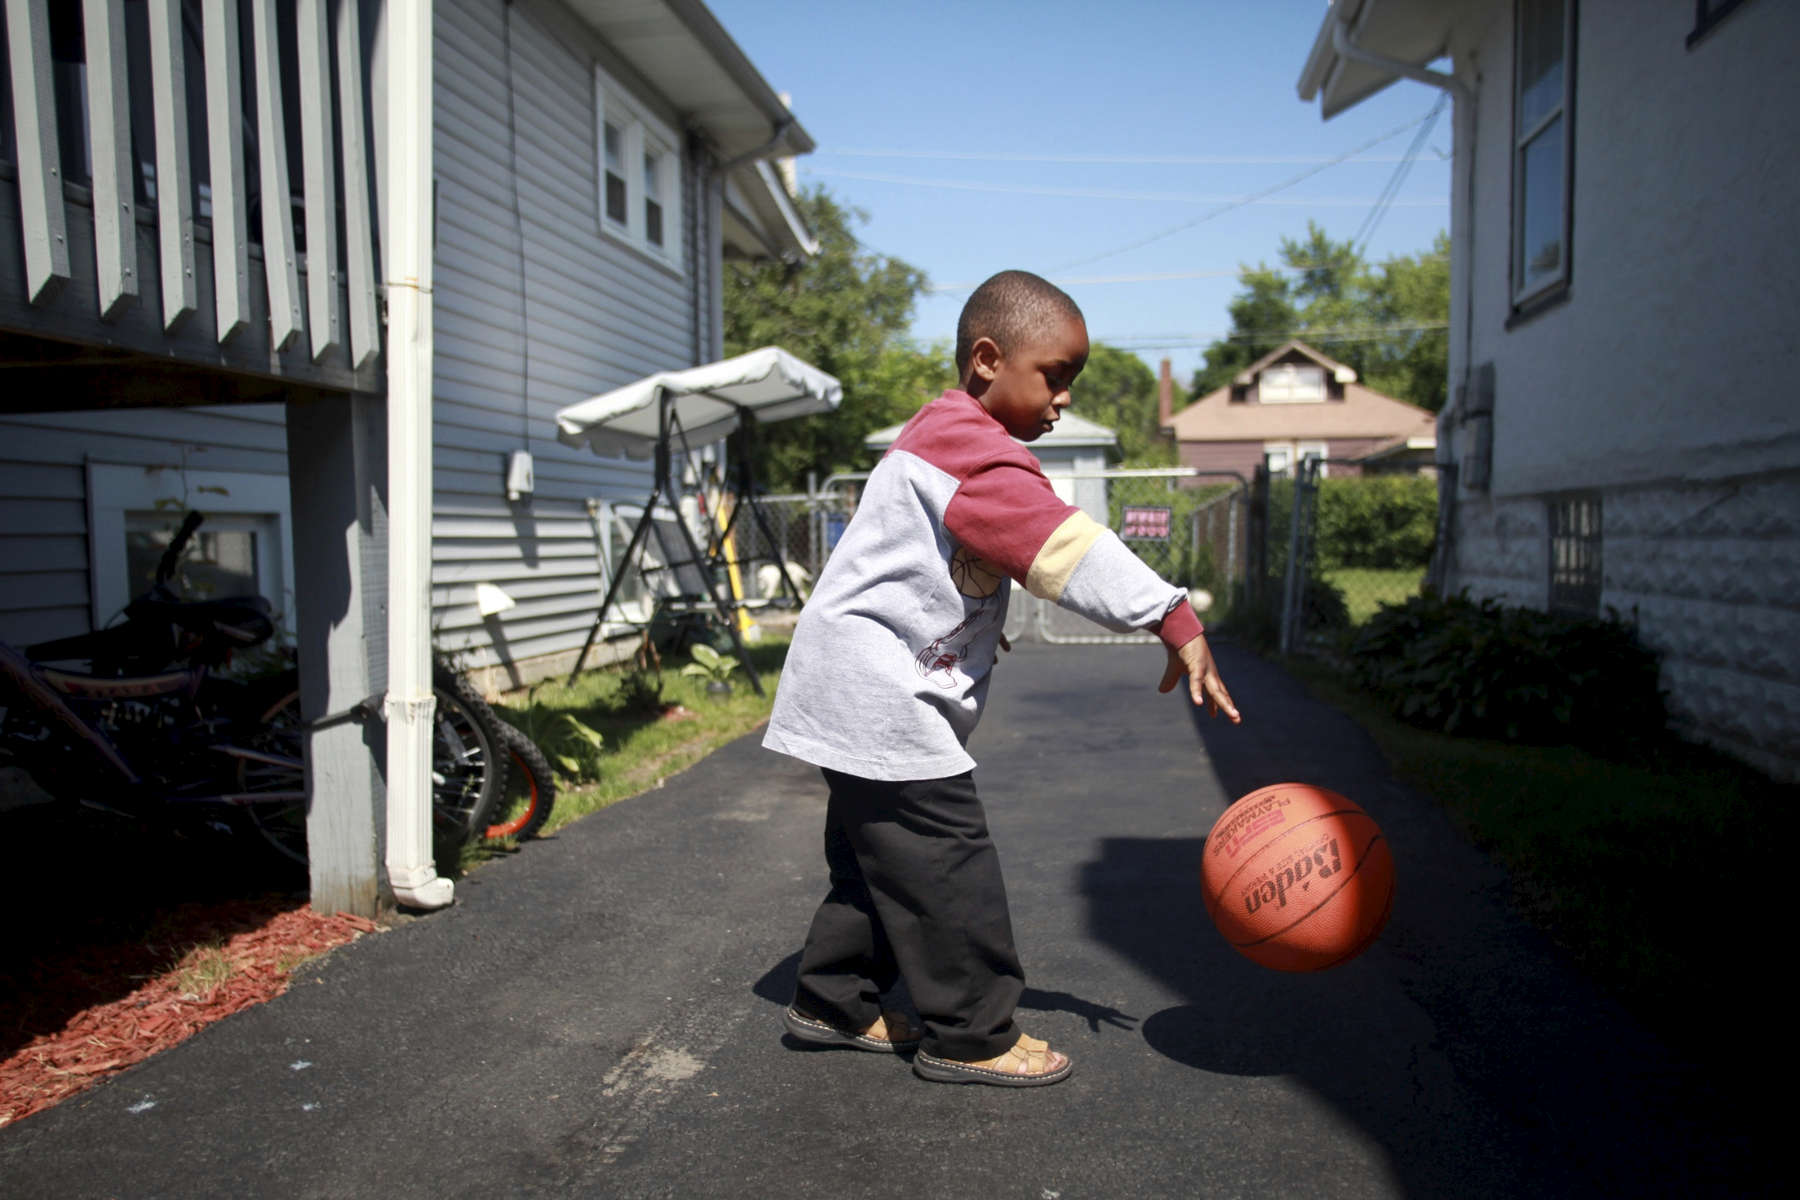 Kanye Hankinson, 5, plays in the driveway of his Maywood home, which his father, William Hankinson, is trying to save from foreclosure. In a town of about 27,000 residents, 1500 housing units are in foreclosure, some of which are owned by US Bank. Mr. Hankinson says US Bank is working with him to adjust his mortgage so he can remain in the home.